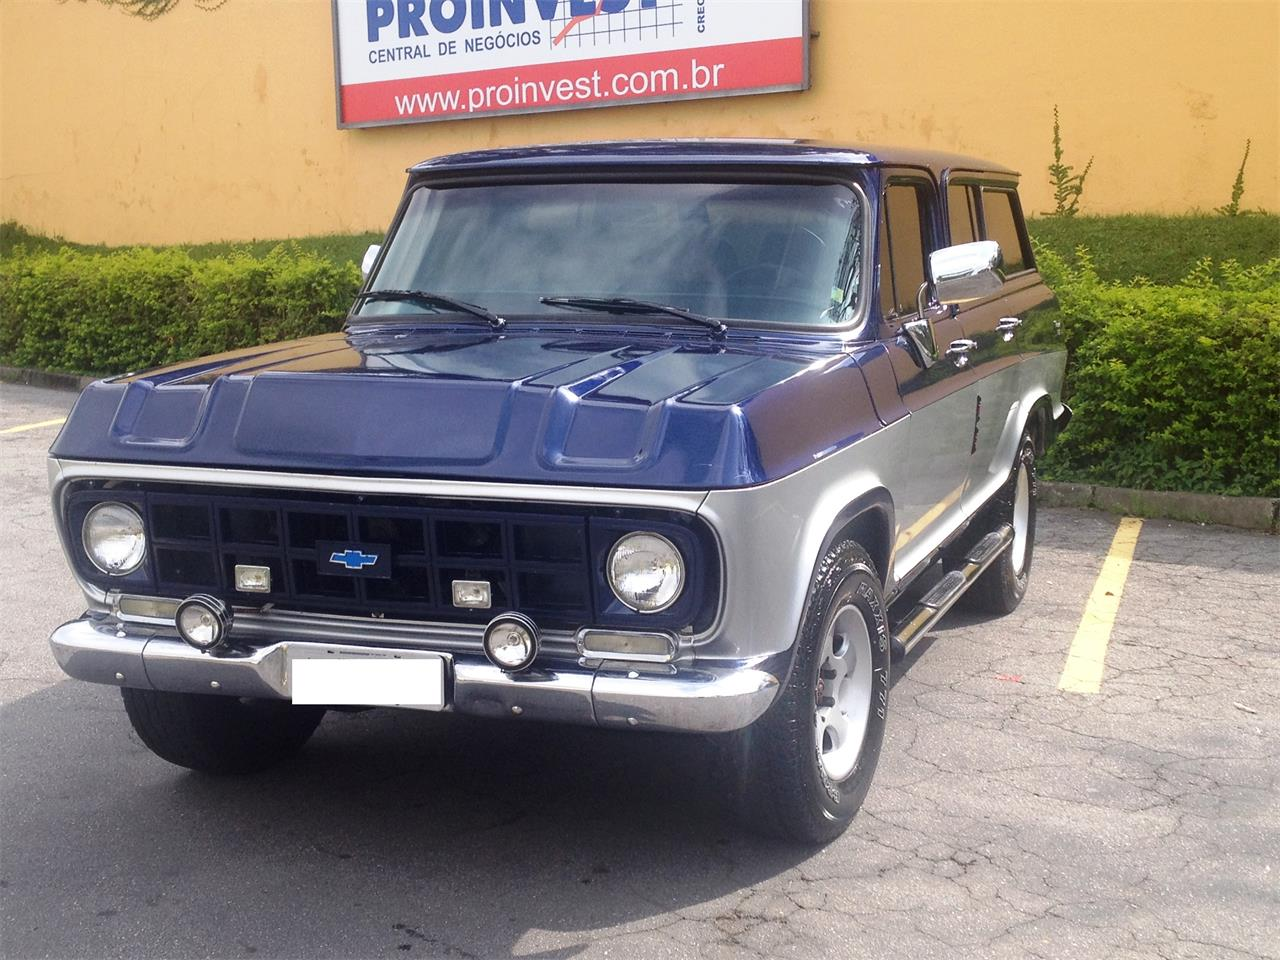 Large Picture of 1985 Chevrolet SUV - $39,900.00 Offered by a Private Seller - KMSF